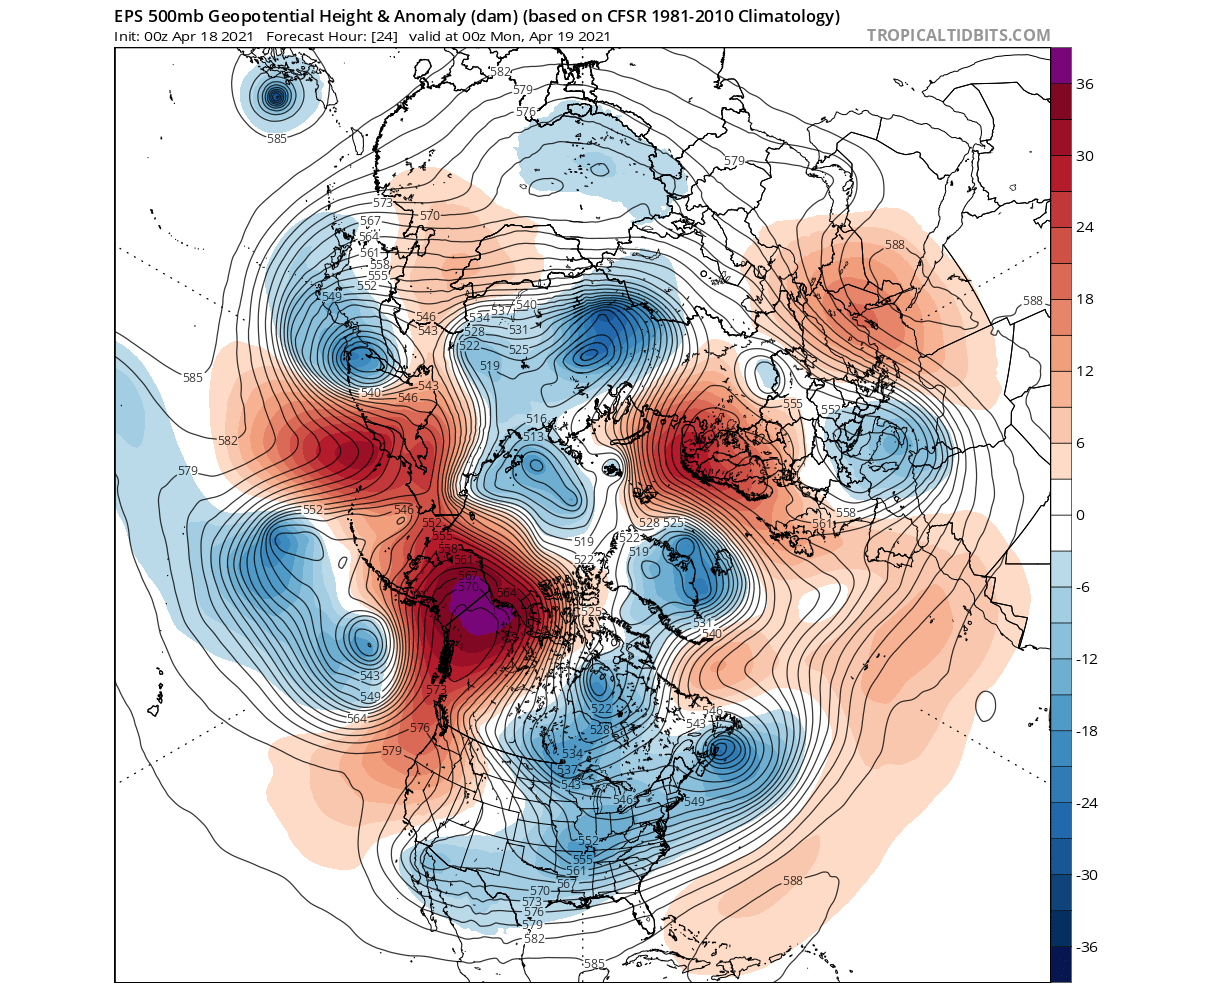 ecmwf-pressure-anomaly-weather-forecast-april-united-states-europe-arctic-day-1